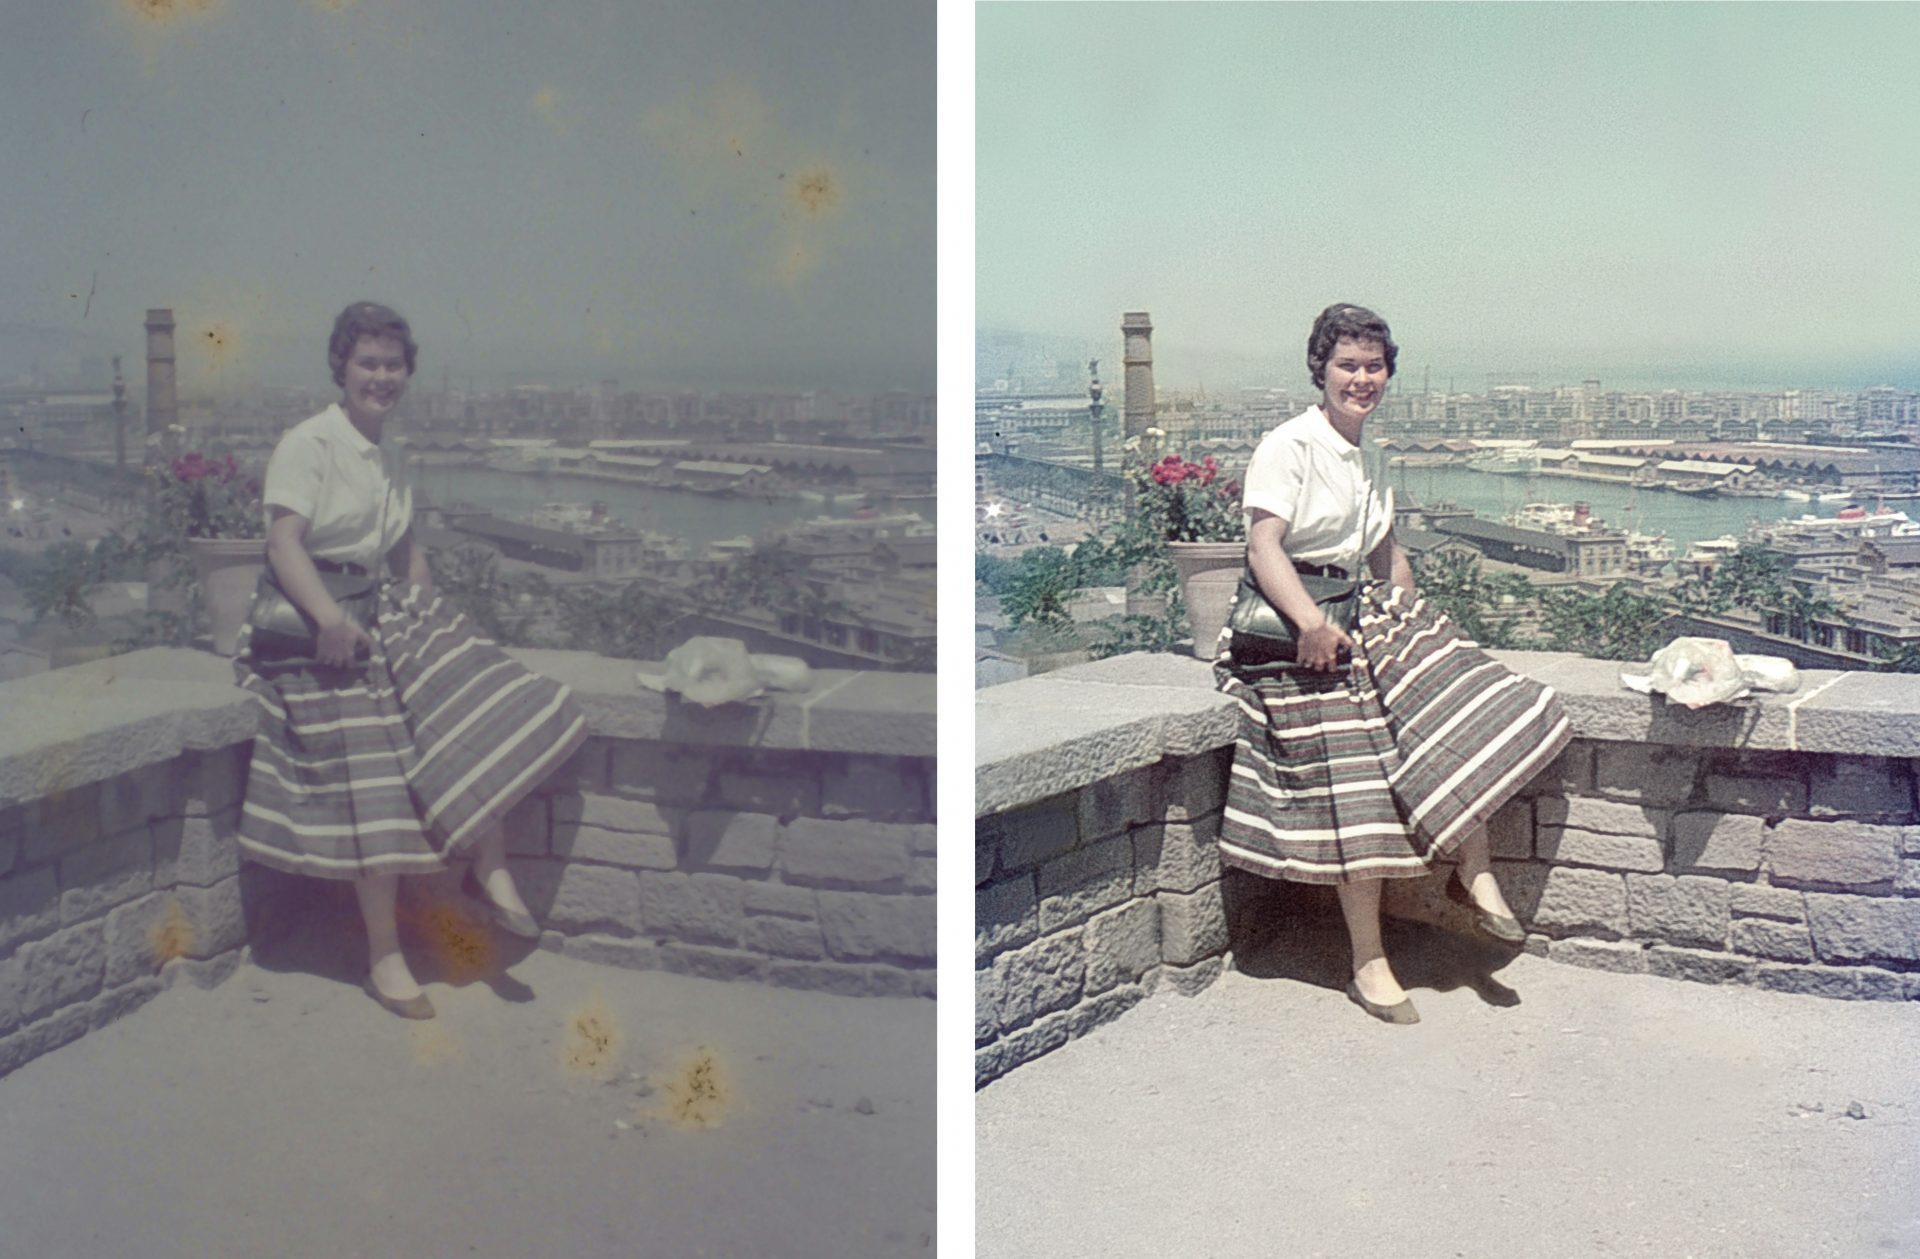 before and after image damaged by time